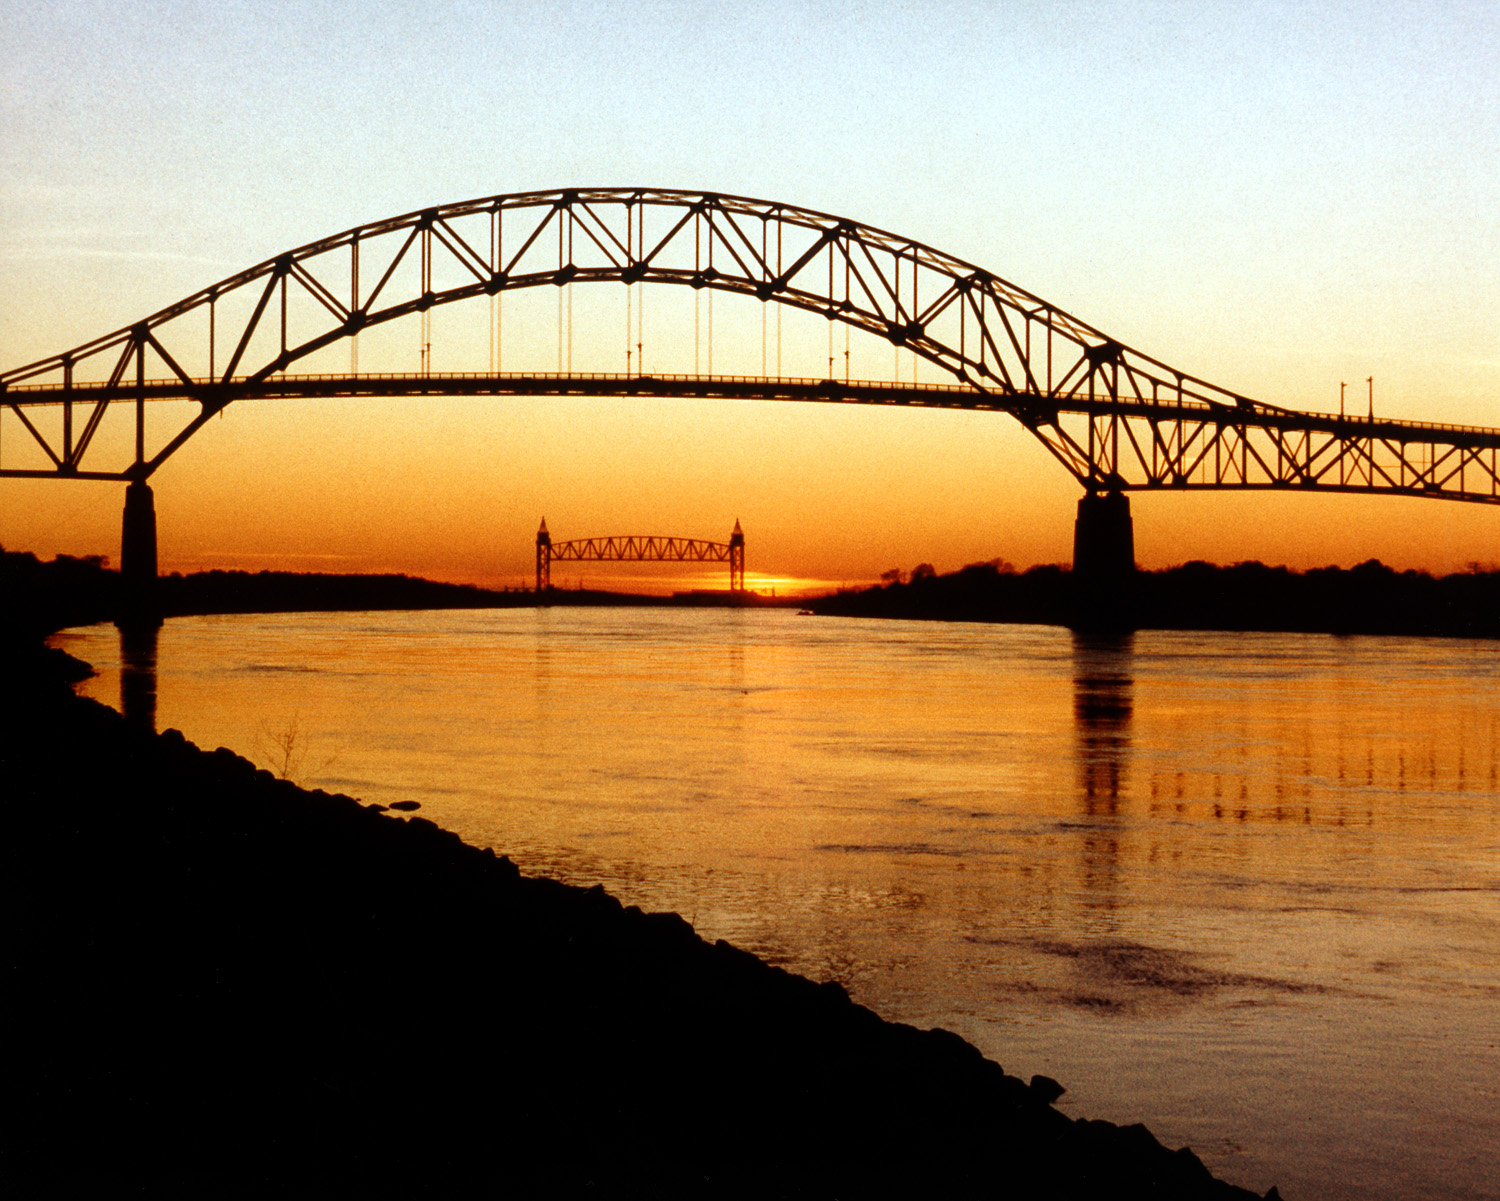 The Bourne Bridge over the Cape Cod Canal, with the Canal Railroad Bridge in the distance.